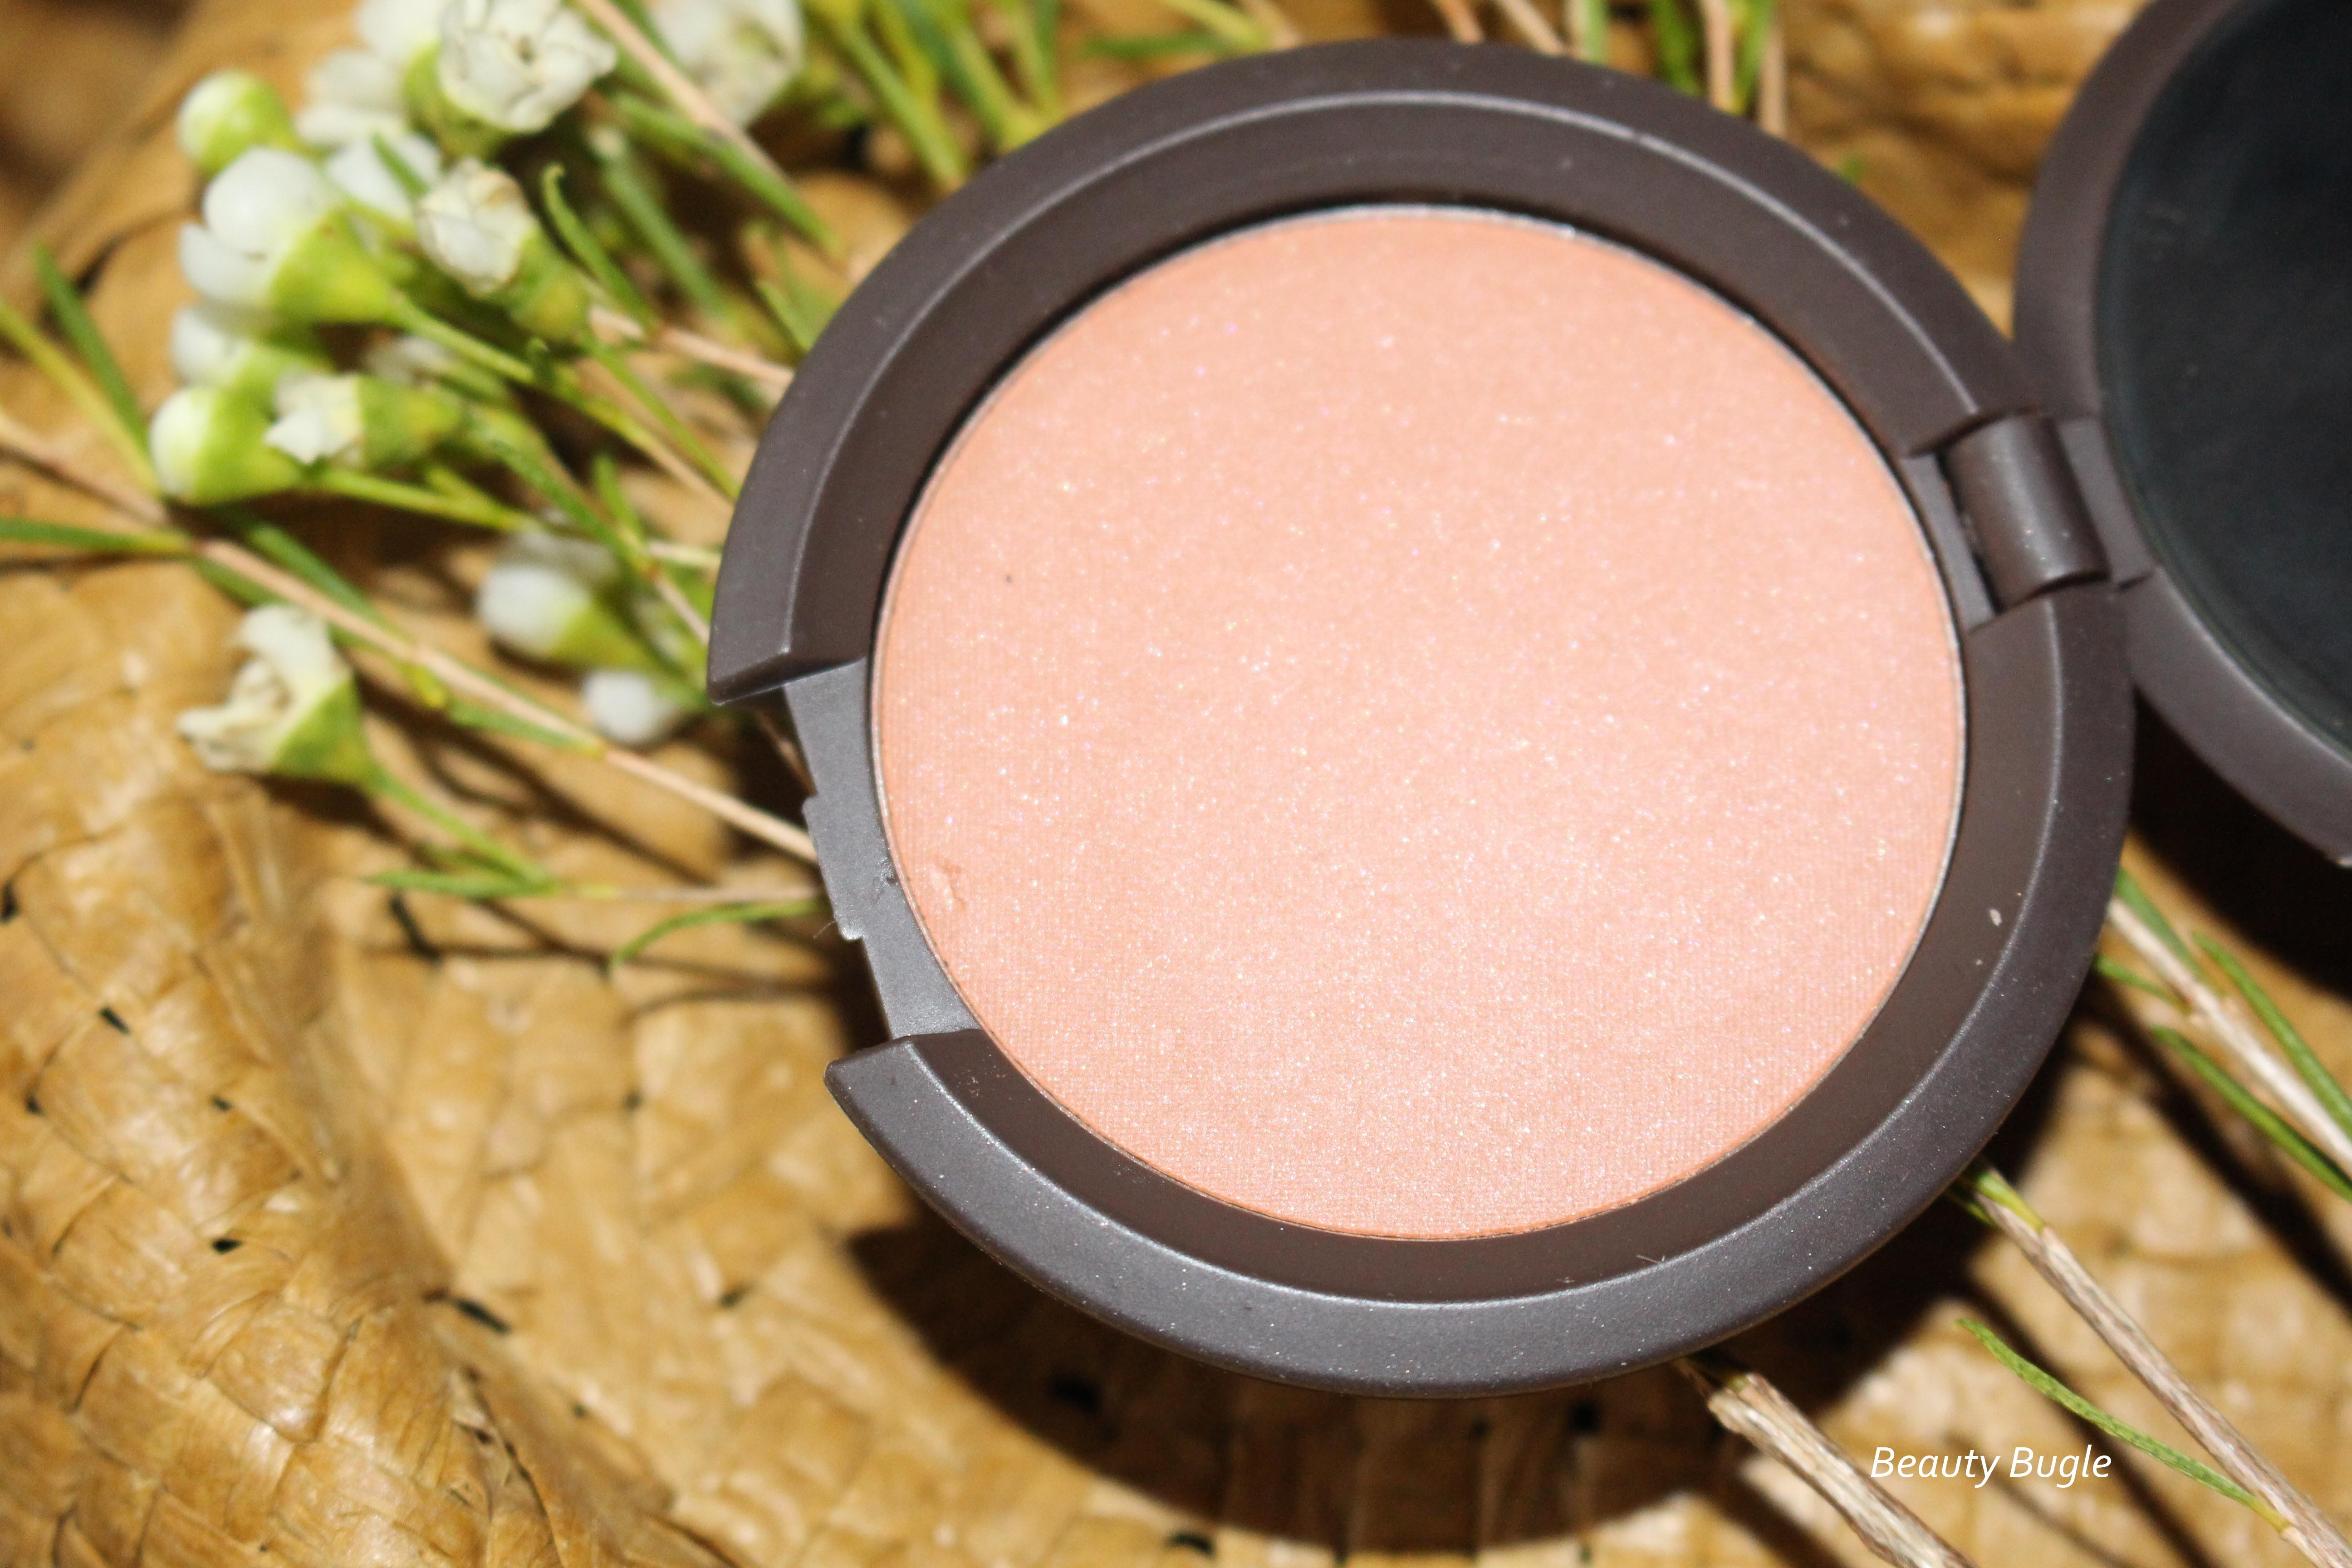 Becca's Mineral Blush in Wild Honey looks like a bronzy peach shade in the pan.